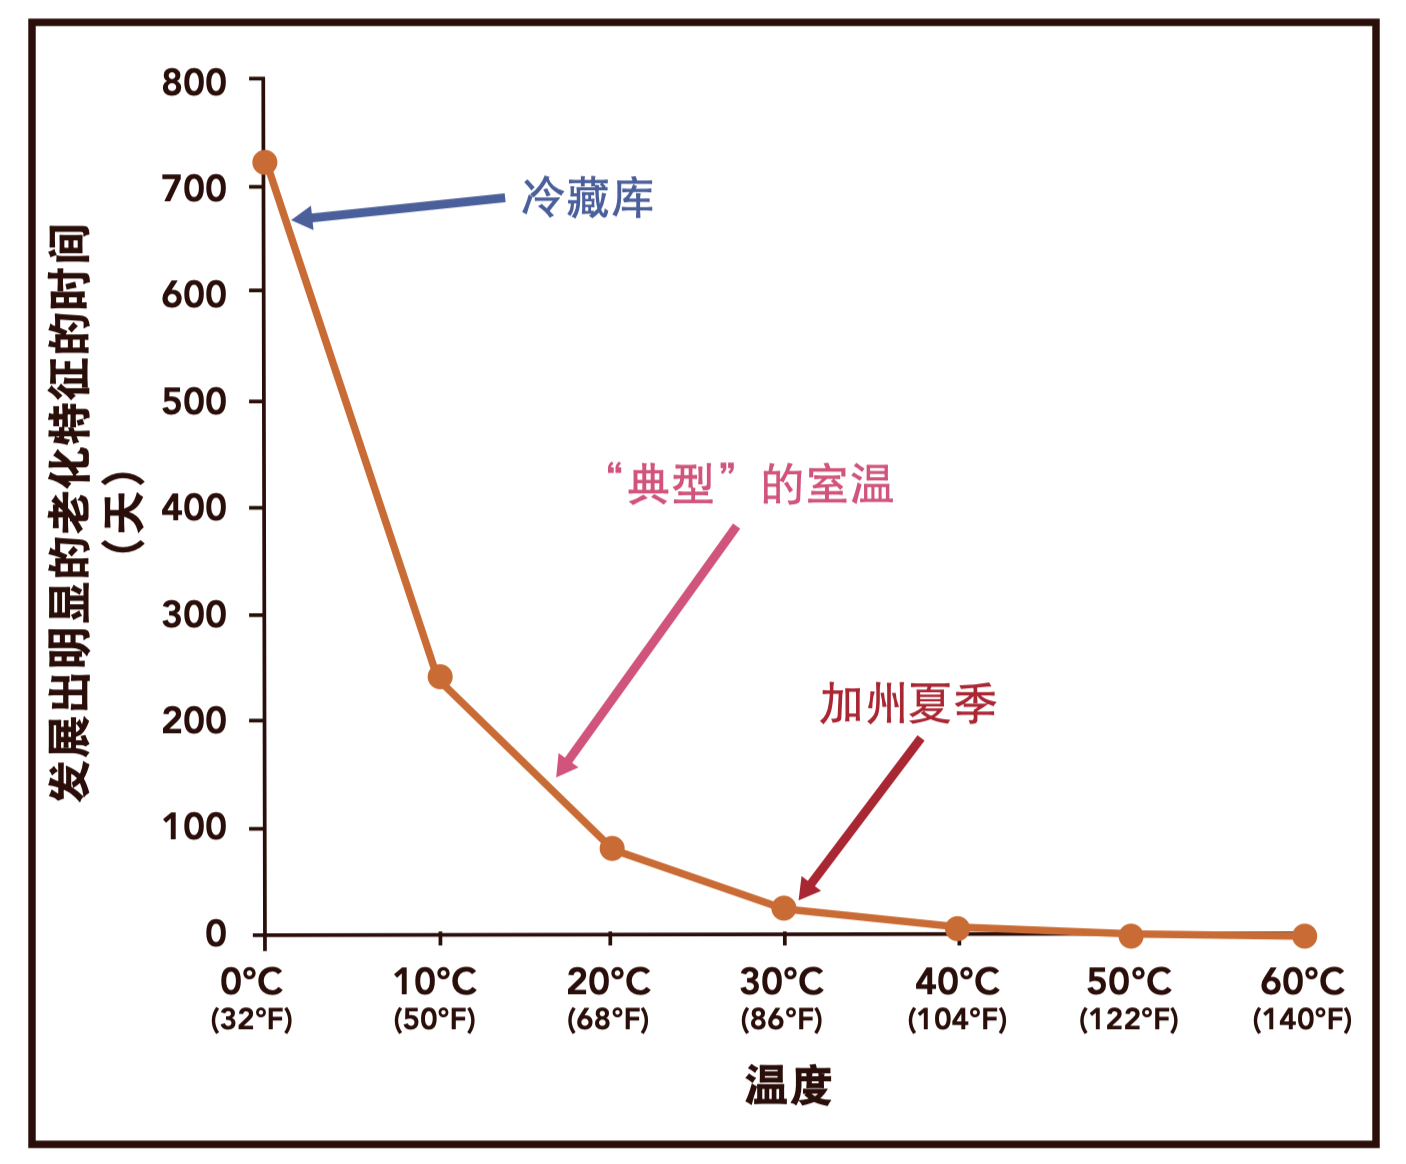 WX20190401-162730@2x.png